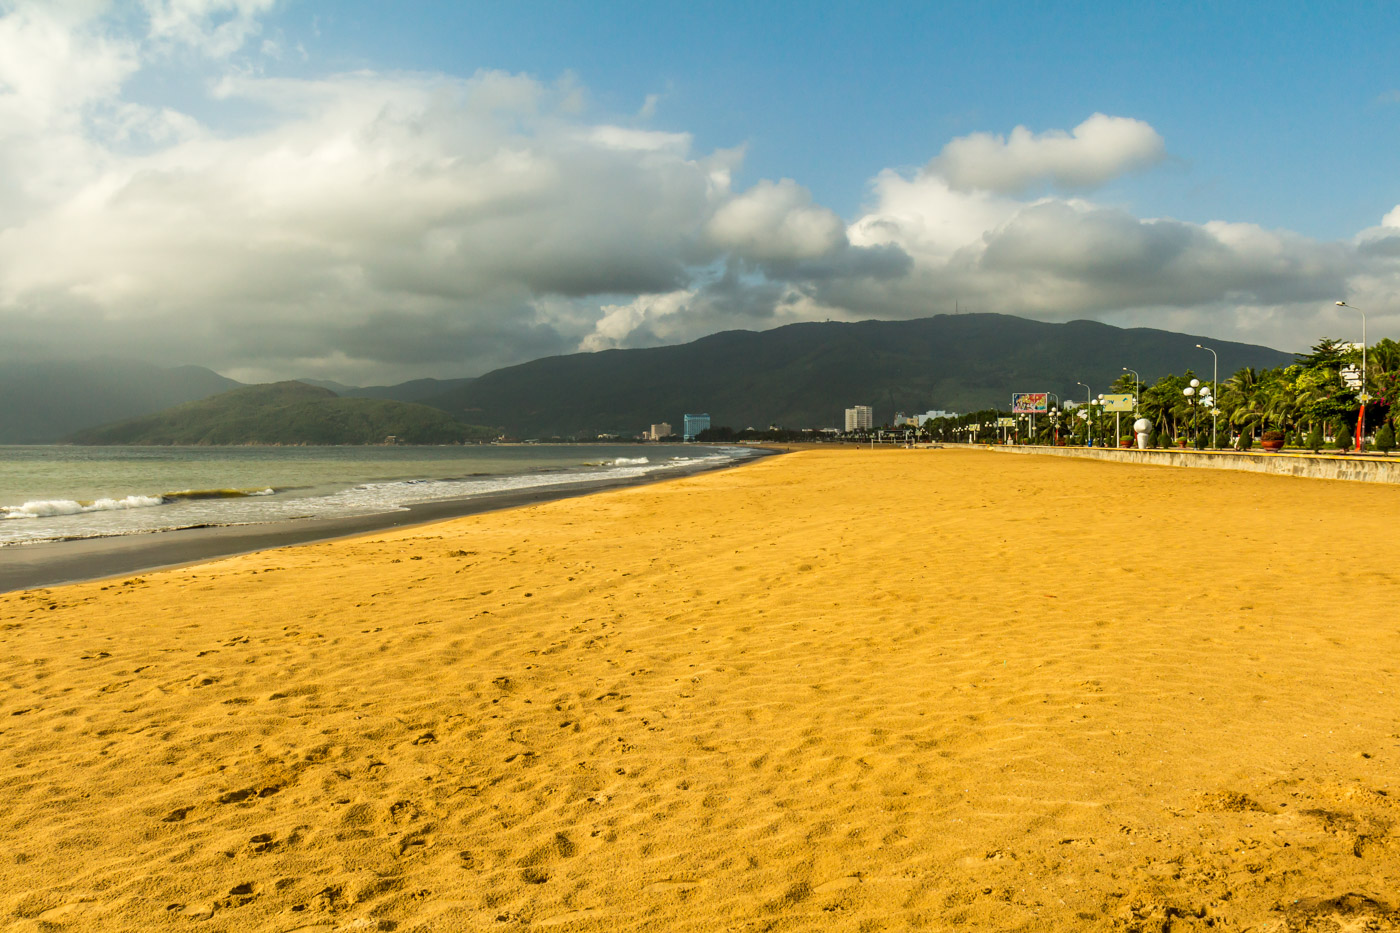 Quy Nhon's big, deserted beach